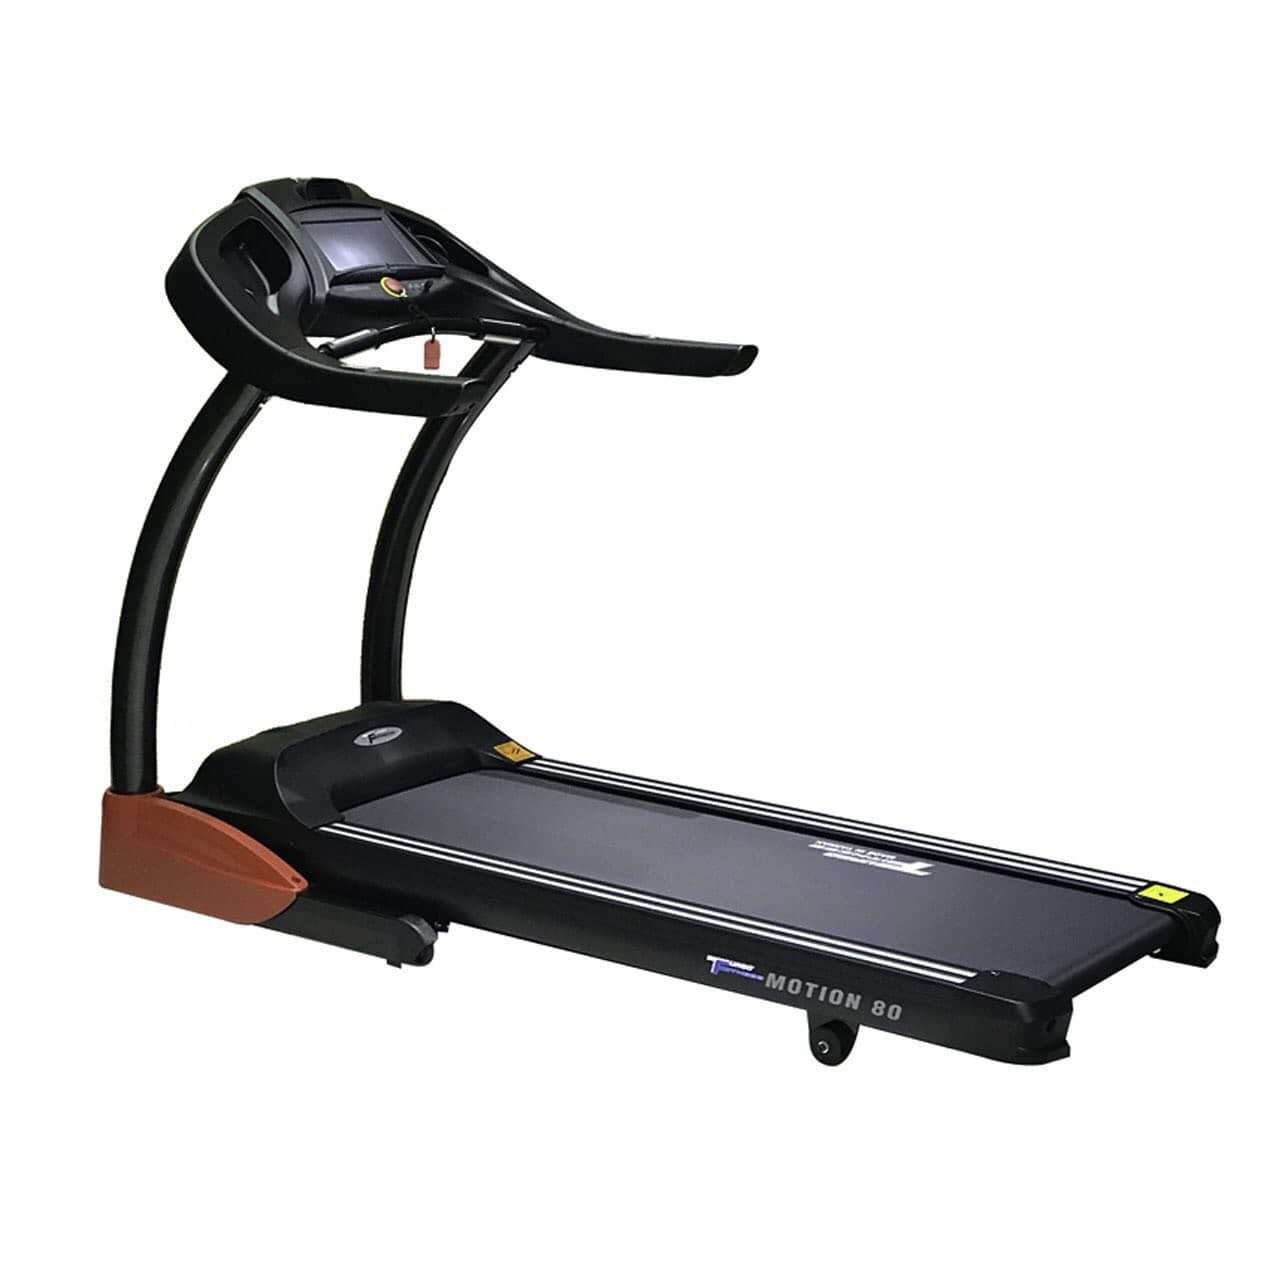 TurboFitness Motion 80 treadmills